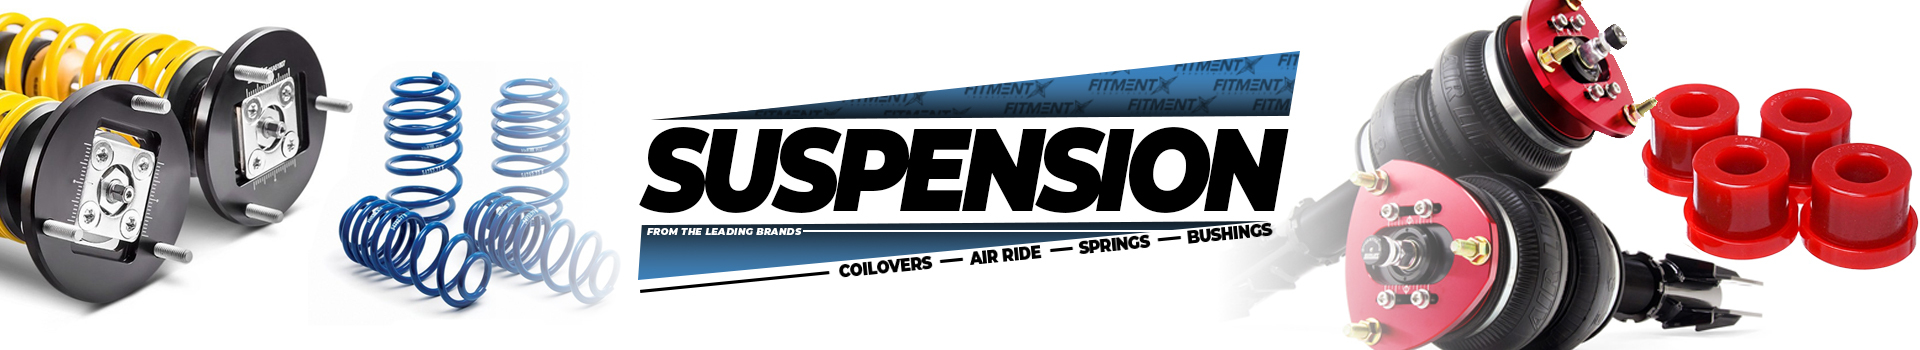 suspension, springs, coilovers, air ride